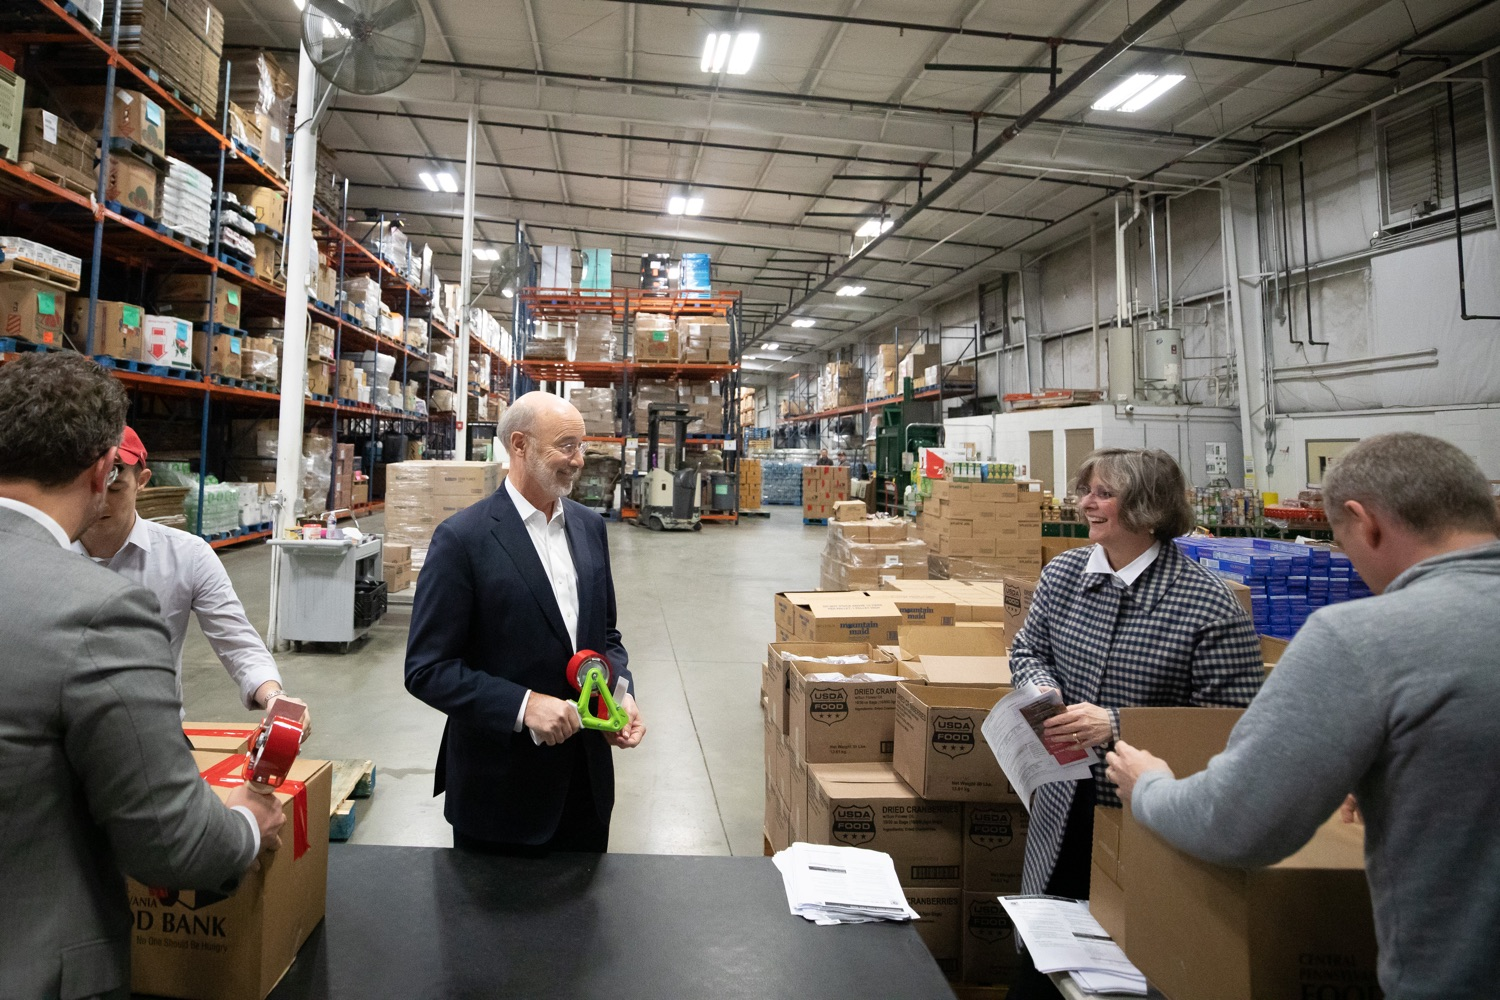 "<a href=""http://filesource.abacast.com/commonwealthofpa/photo/17632_gov_foodbank_volunteering_dz_018.jpg"" target=""_blank"">⇣ Download Photo<br></a>Governor Tom Wolf loading boxes of food at the Central Pennsylvania Food Bank.  The governor and first lady visit the Central Pennsylvania Food Bank in Harrisburg to participate in a volunteer project, packing boxes of food for veterans and their families. Ahead of Thanksgiving and the holiday season, Governor Tom Wolf and First Lady Frances Wolf are reminding Pennsylvanians of the importance of helping each other. Harrisburg, PA  Tuesday November 26, 2019"